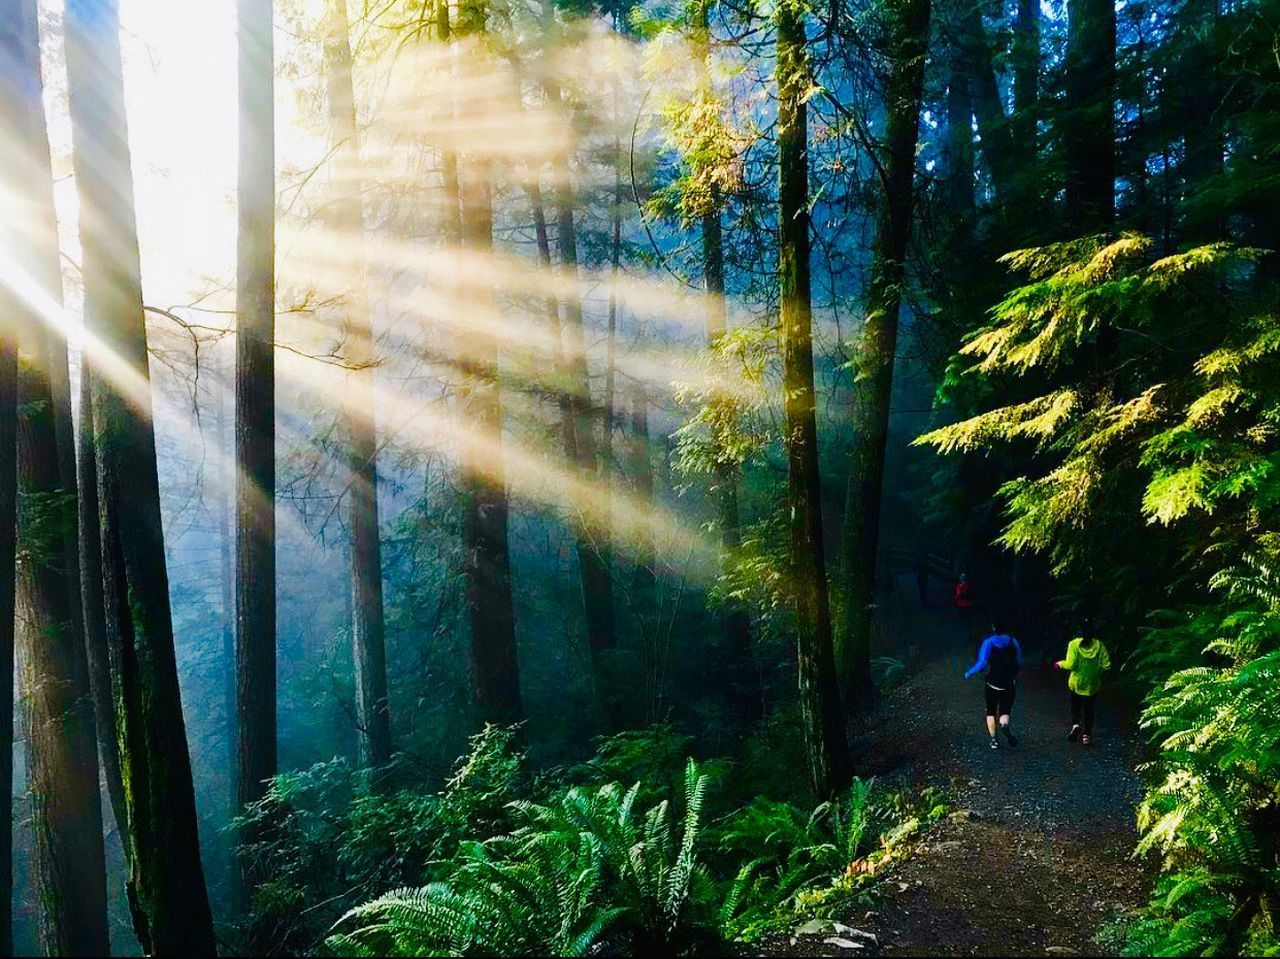 tree, plant, forest, land, real people, nature, growth, beauty in nature, walking, day, leisure activity, full length, men, one person, lifestyles, sunlight, green color, outdoors, tranquility, woodland